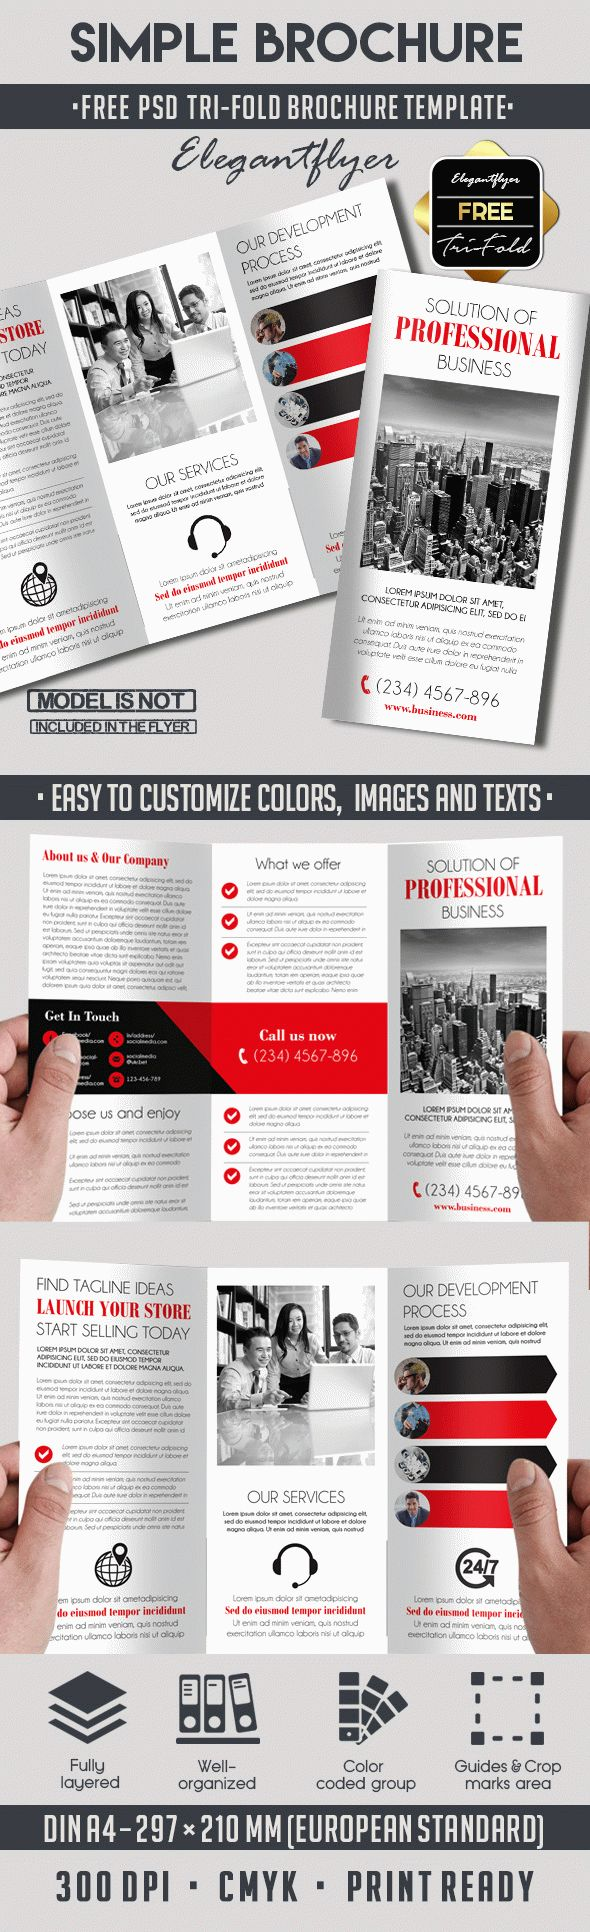 Simple free tri fold psd brochure template by elegantflyer for Tri fold brochure template psd